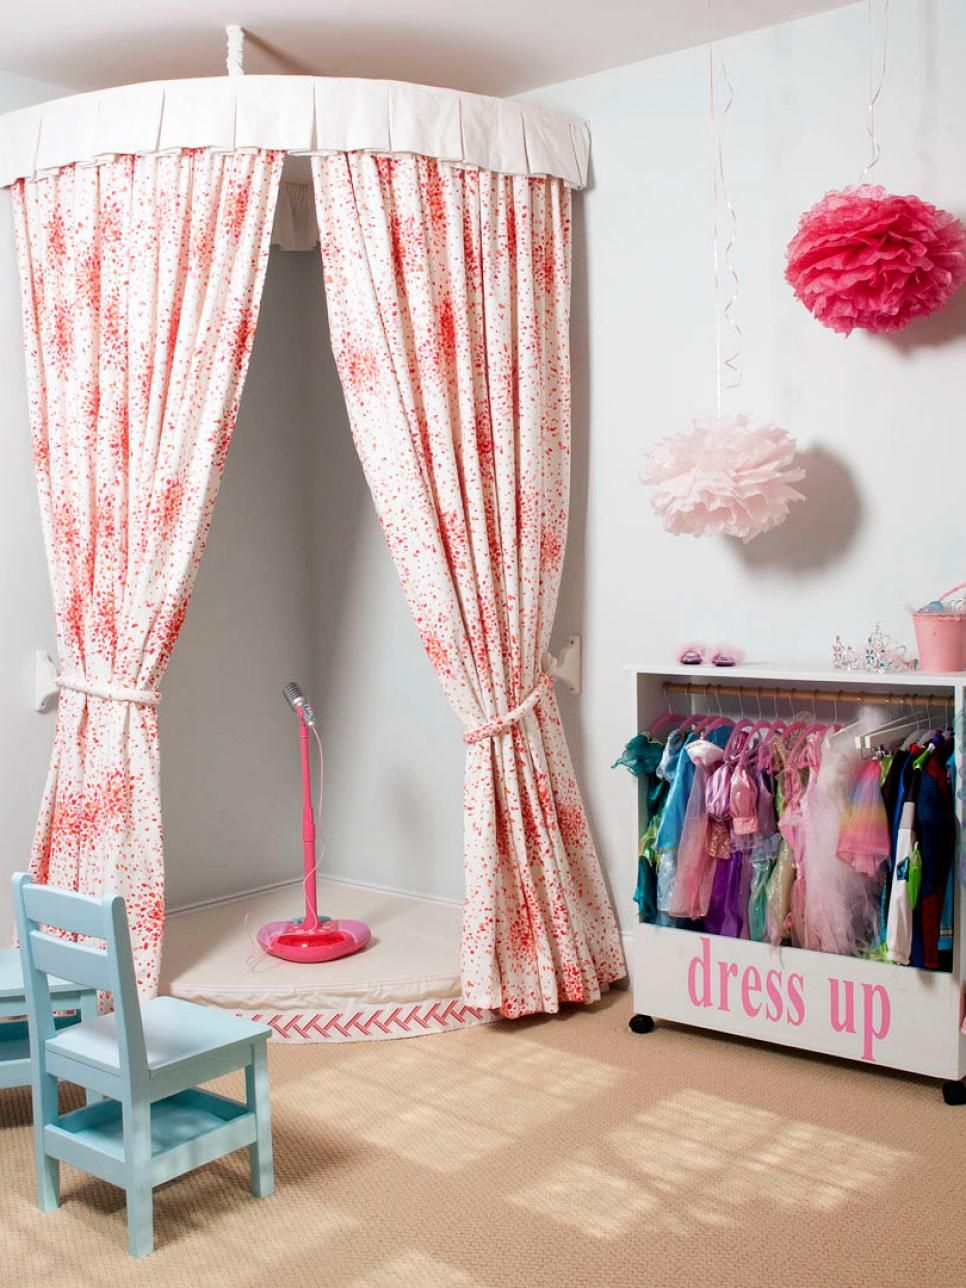 Amazing Kids Rooms Gallery of Amazing